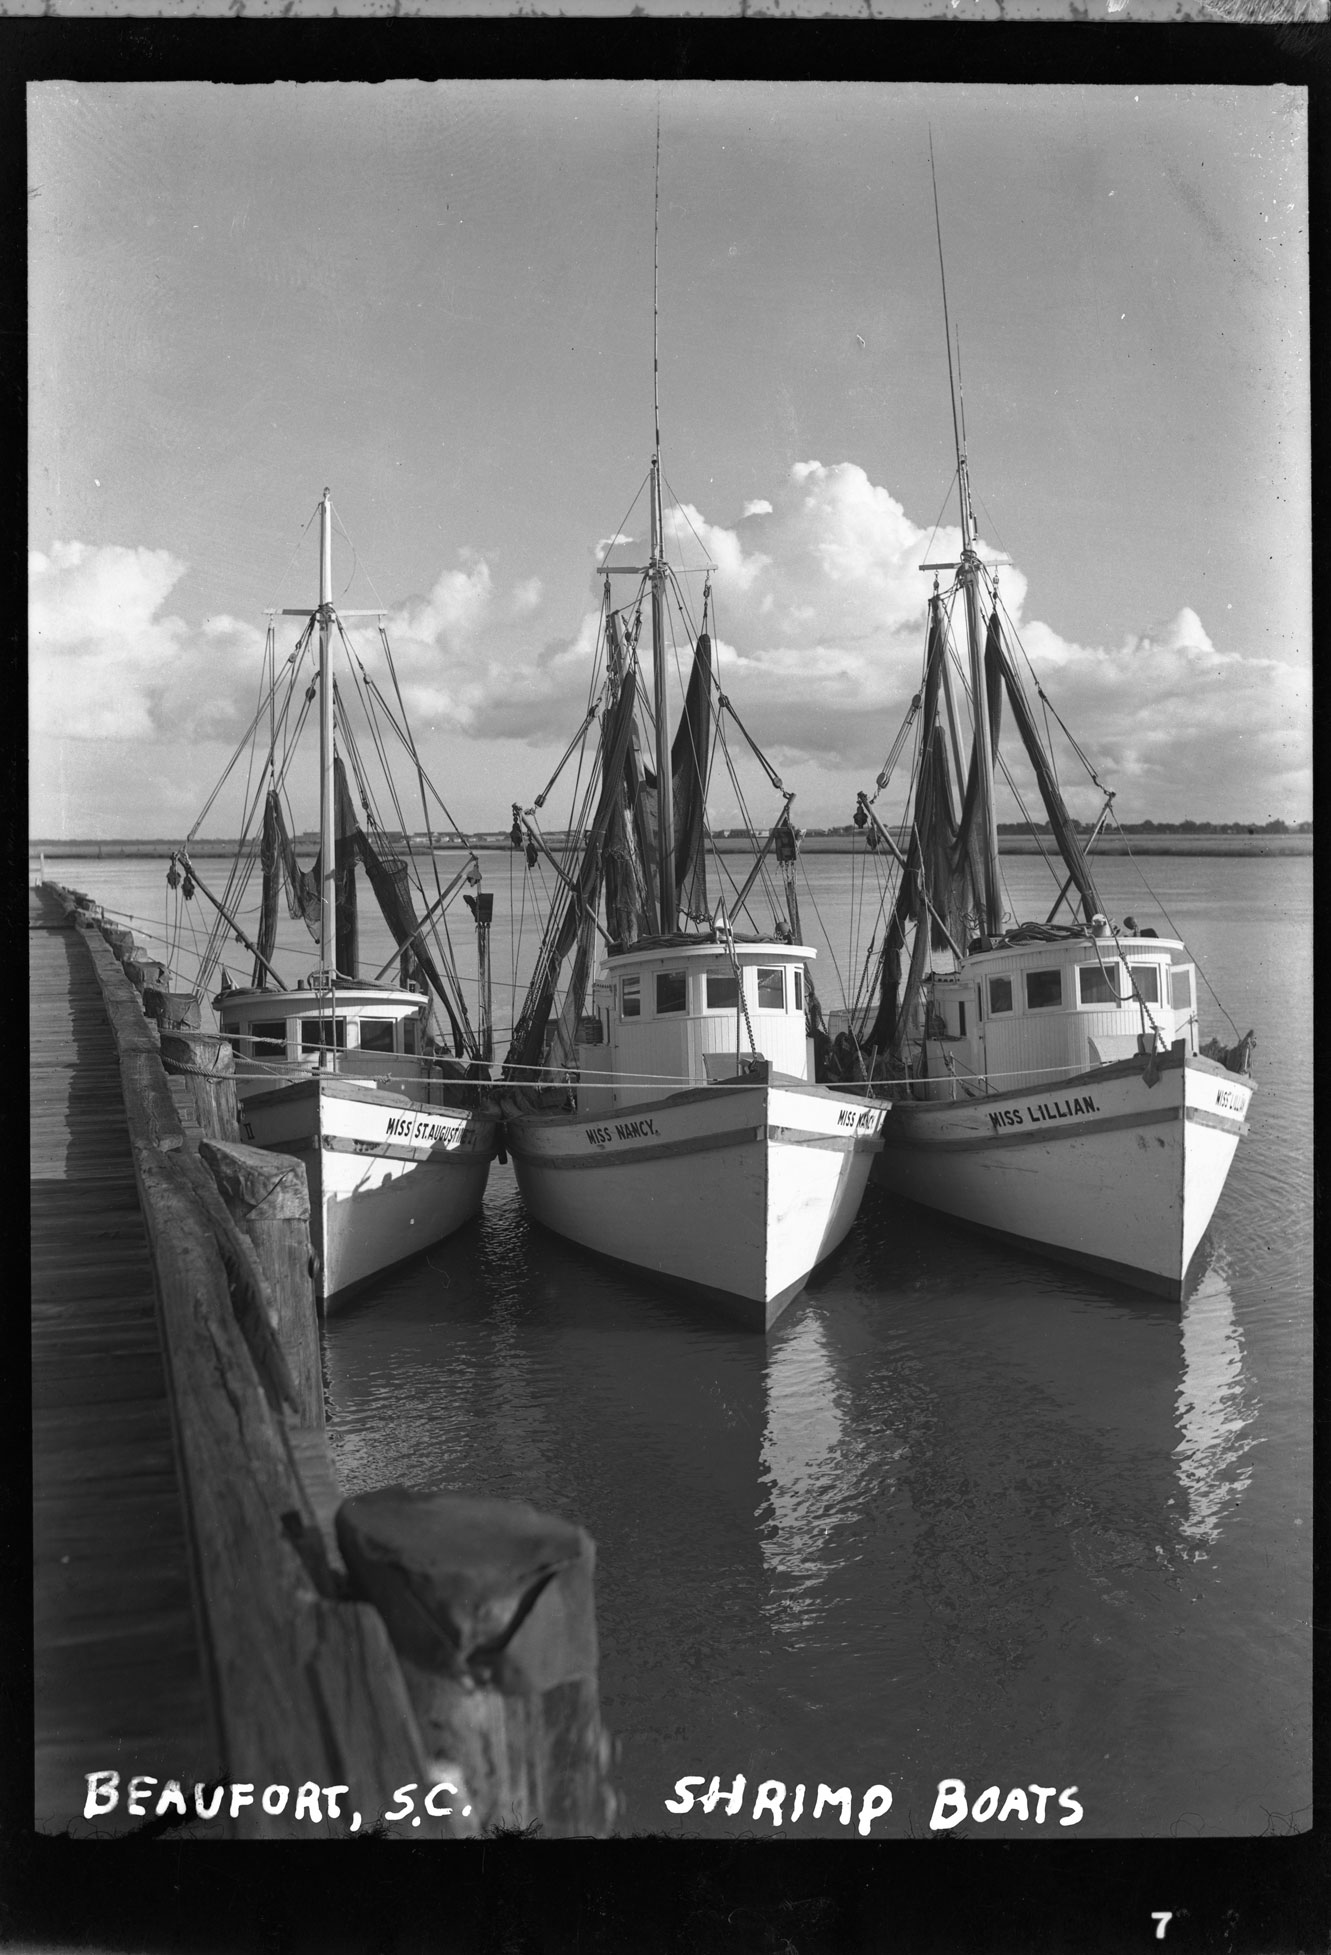 Beaufort, S.C. Shrimp boats